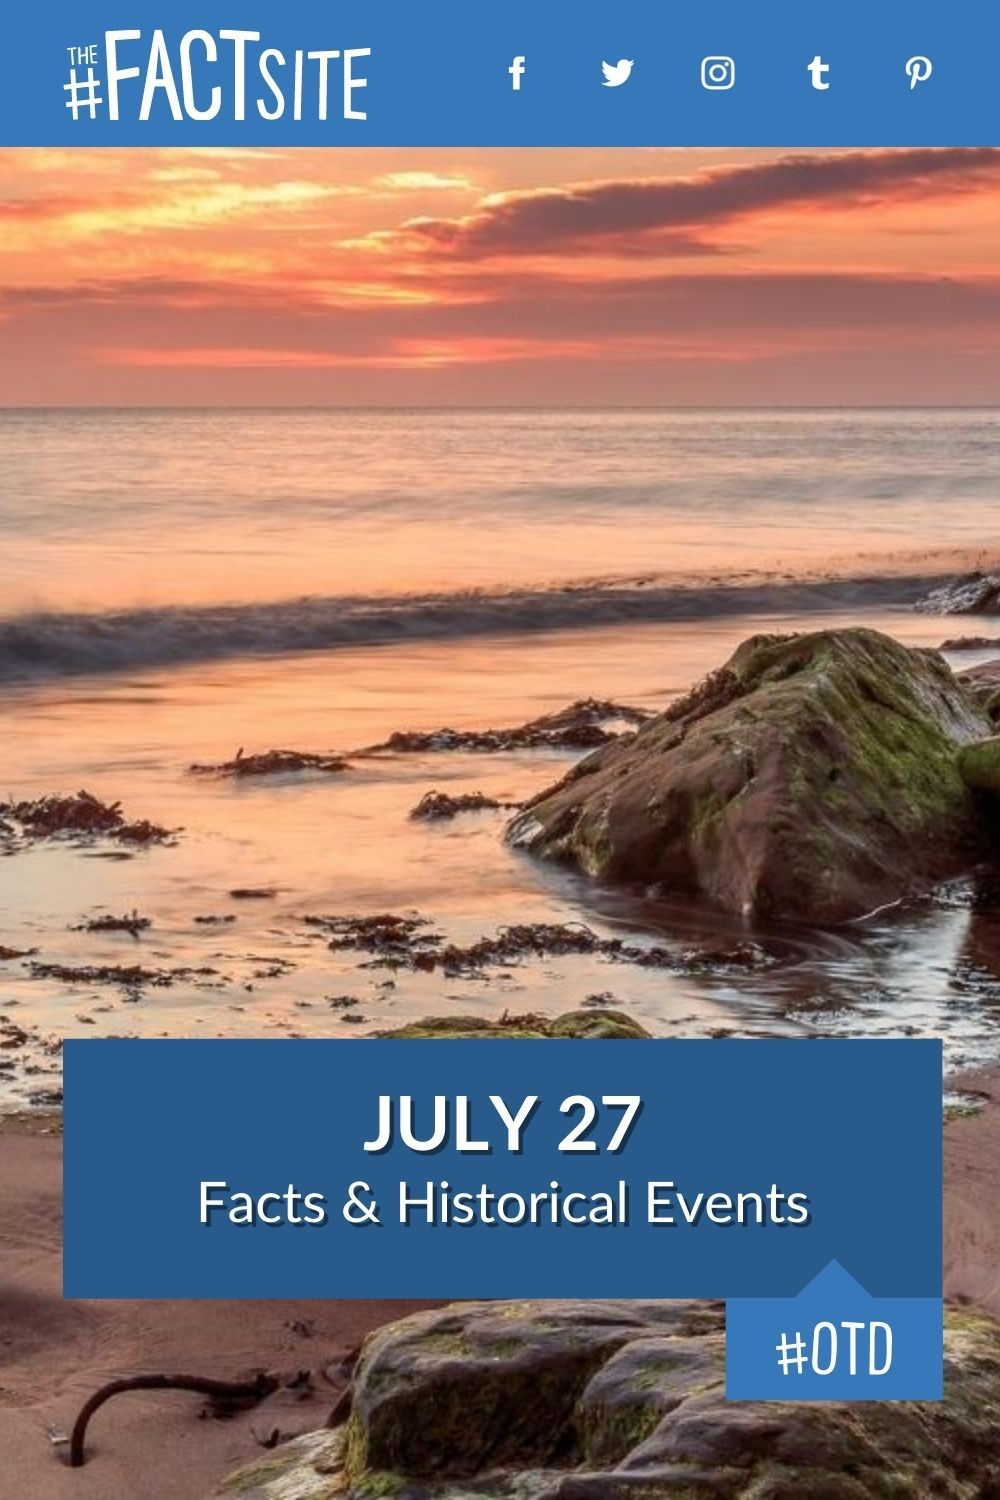 Facts & Historic Events That Happened on July 27